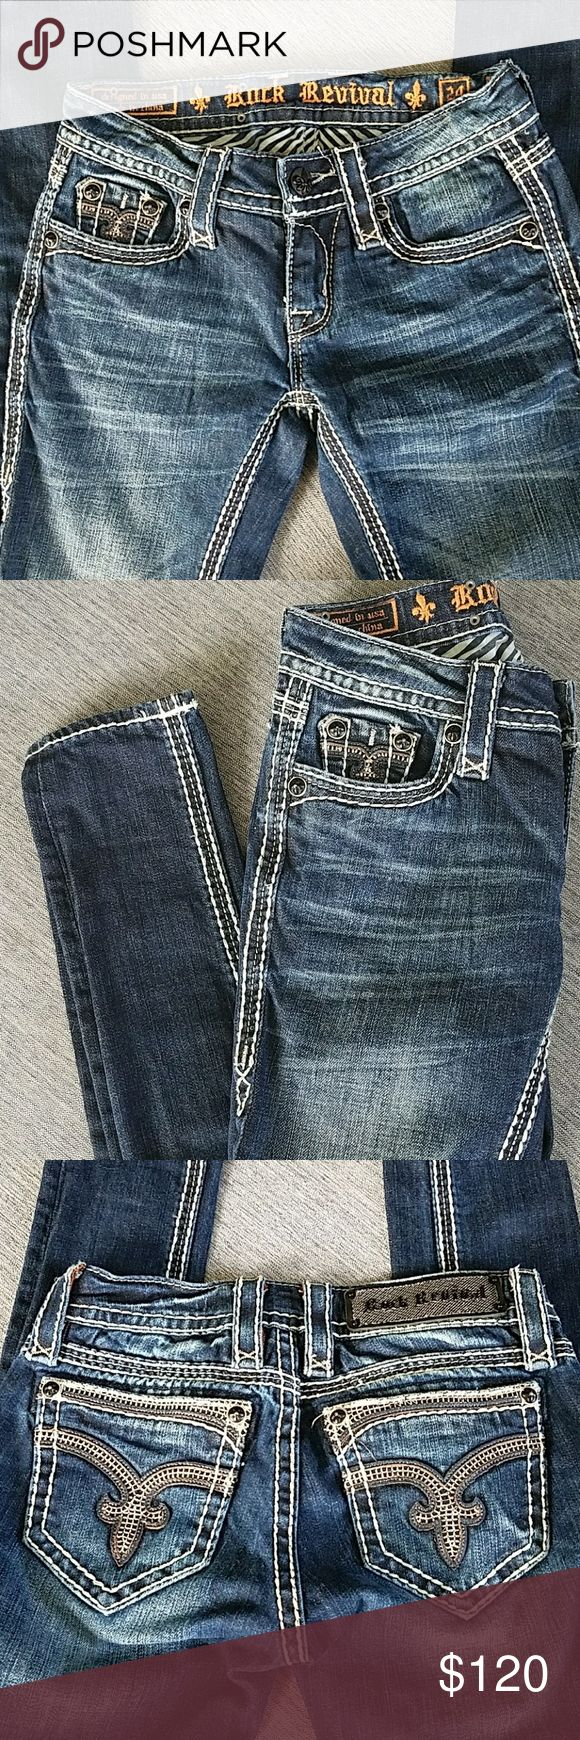 Rock Revival women's jeans Skinny jean fit. Perfect condition. Never been worn. Size 24 Rock Revival Jeans Skinny